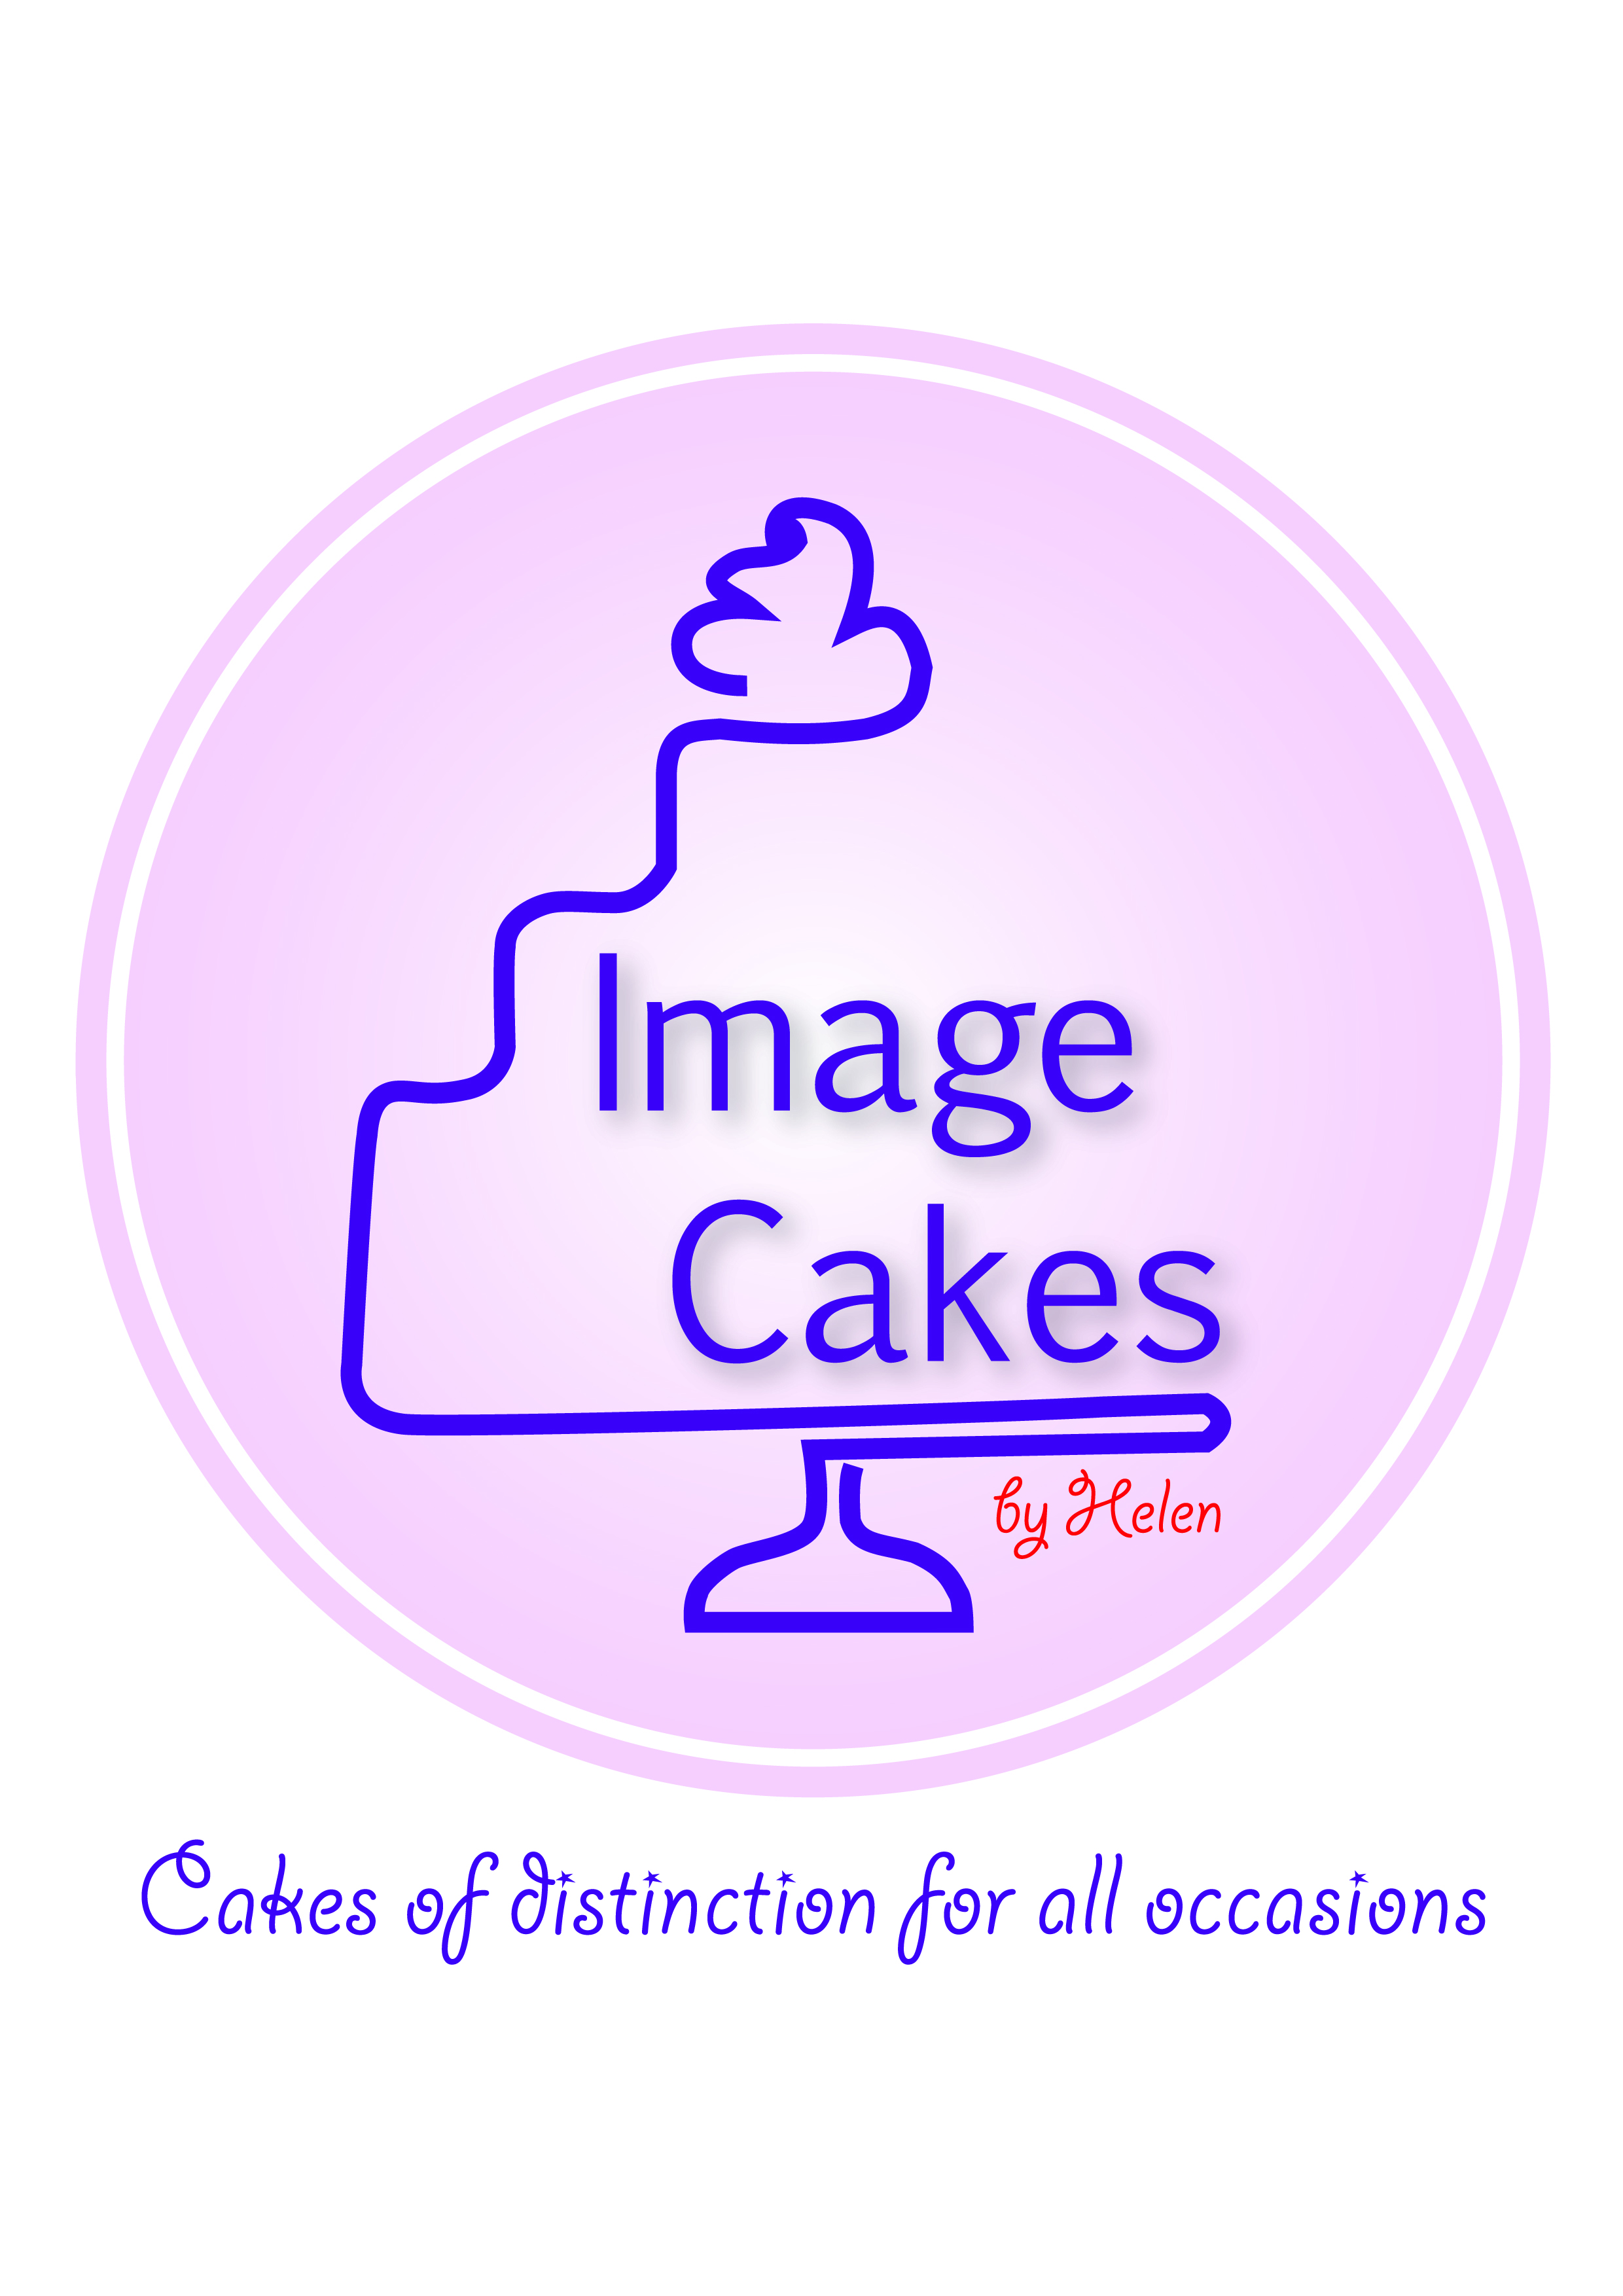 Image Cakes logo with slogan (hi-res)